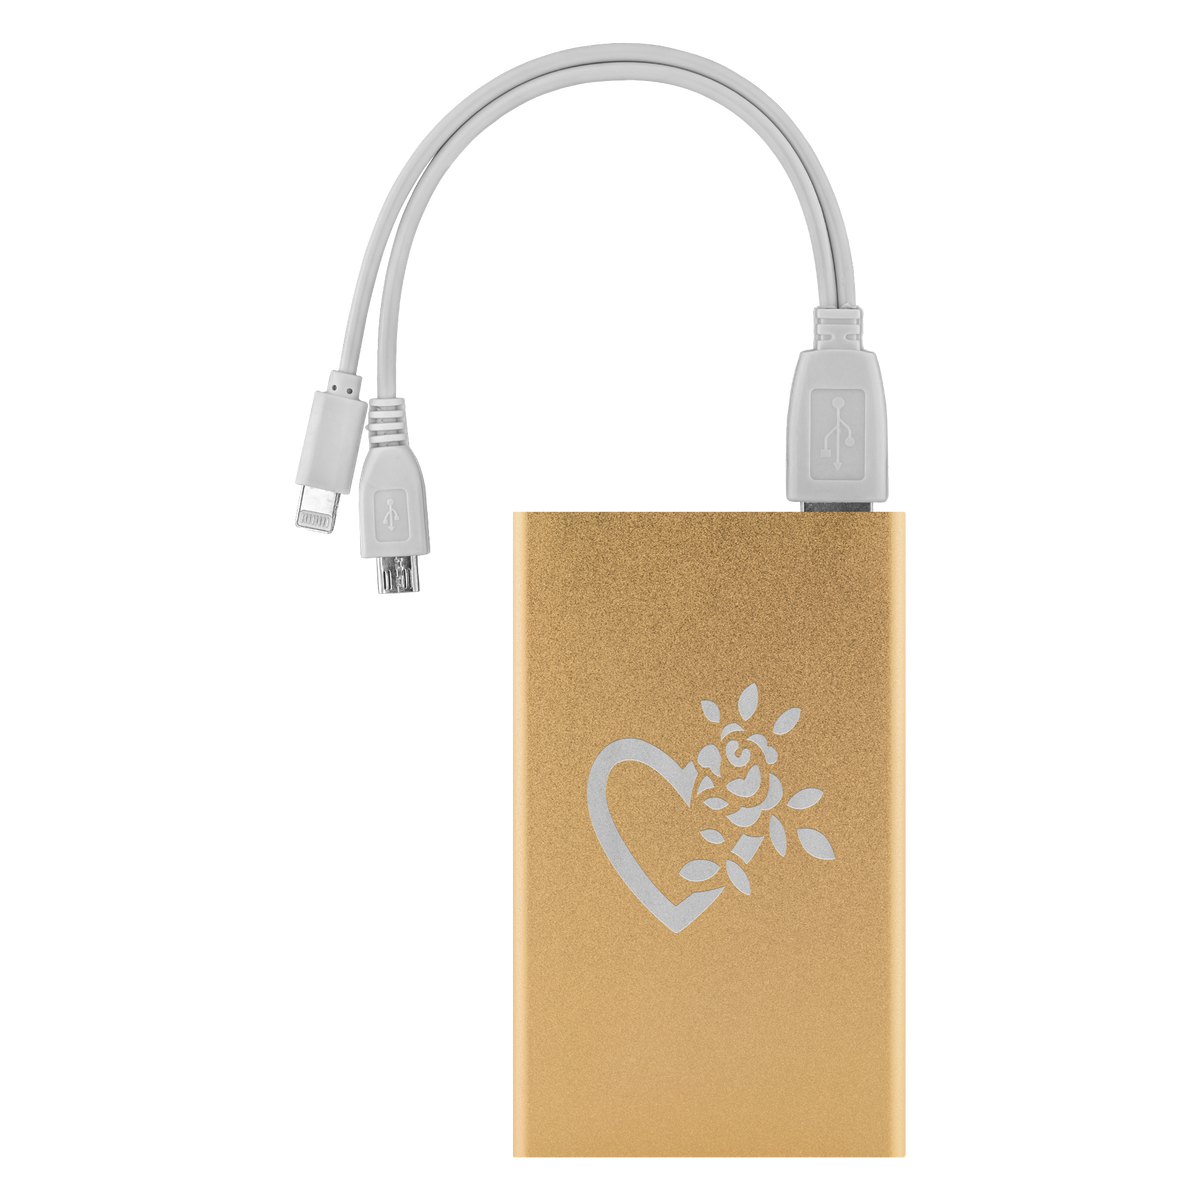 A flowering heart laser etched Lithium-Ion power bank